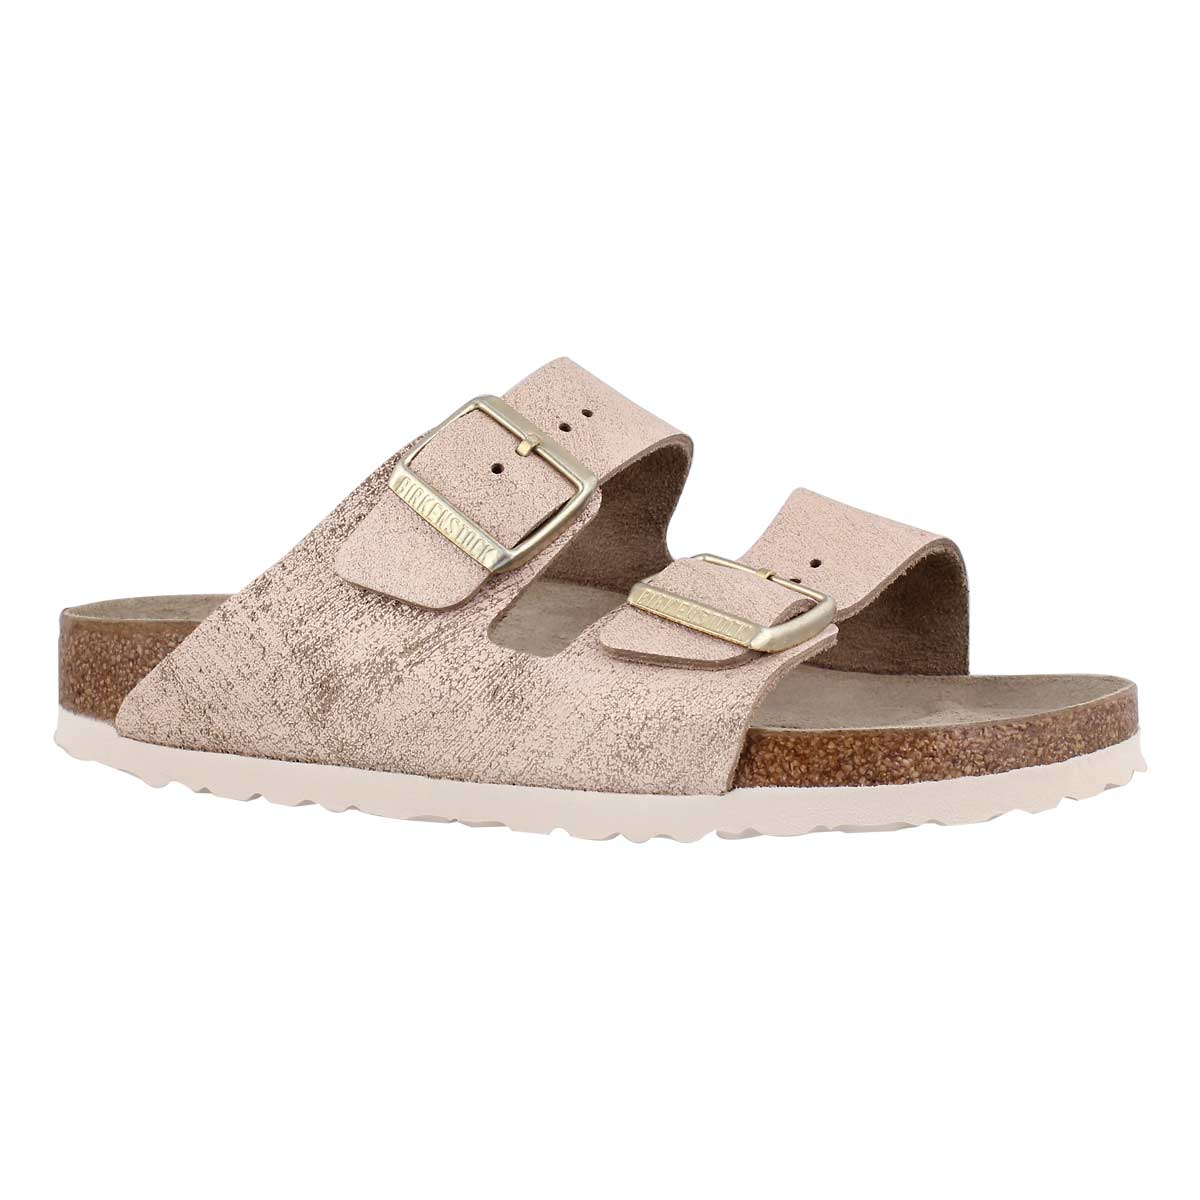 Women's ARIZONA LTR mtlc rse gld sandals - Narrow